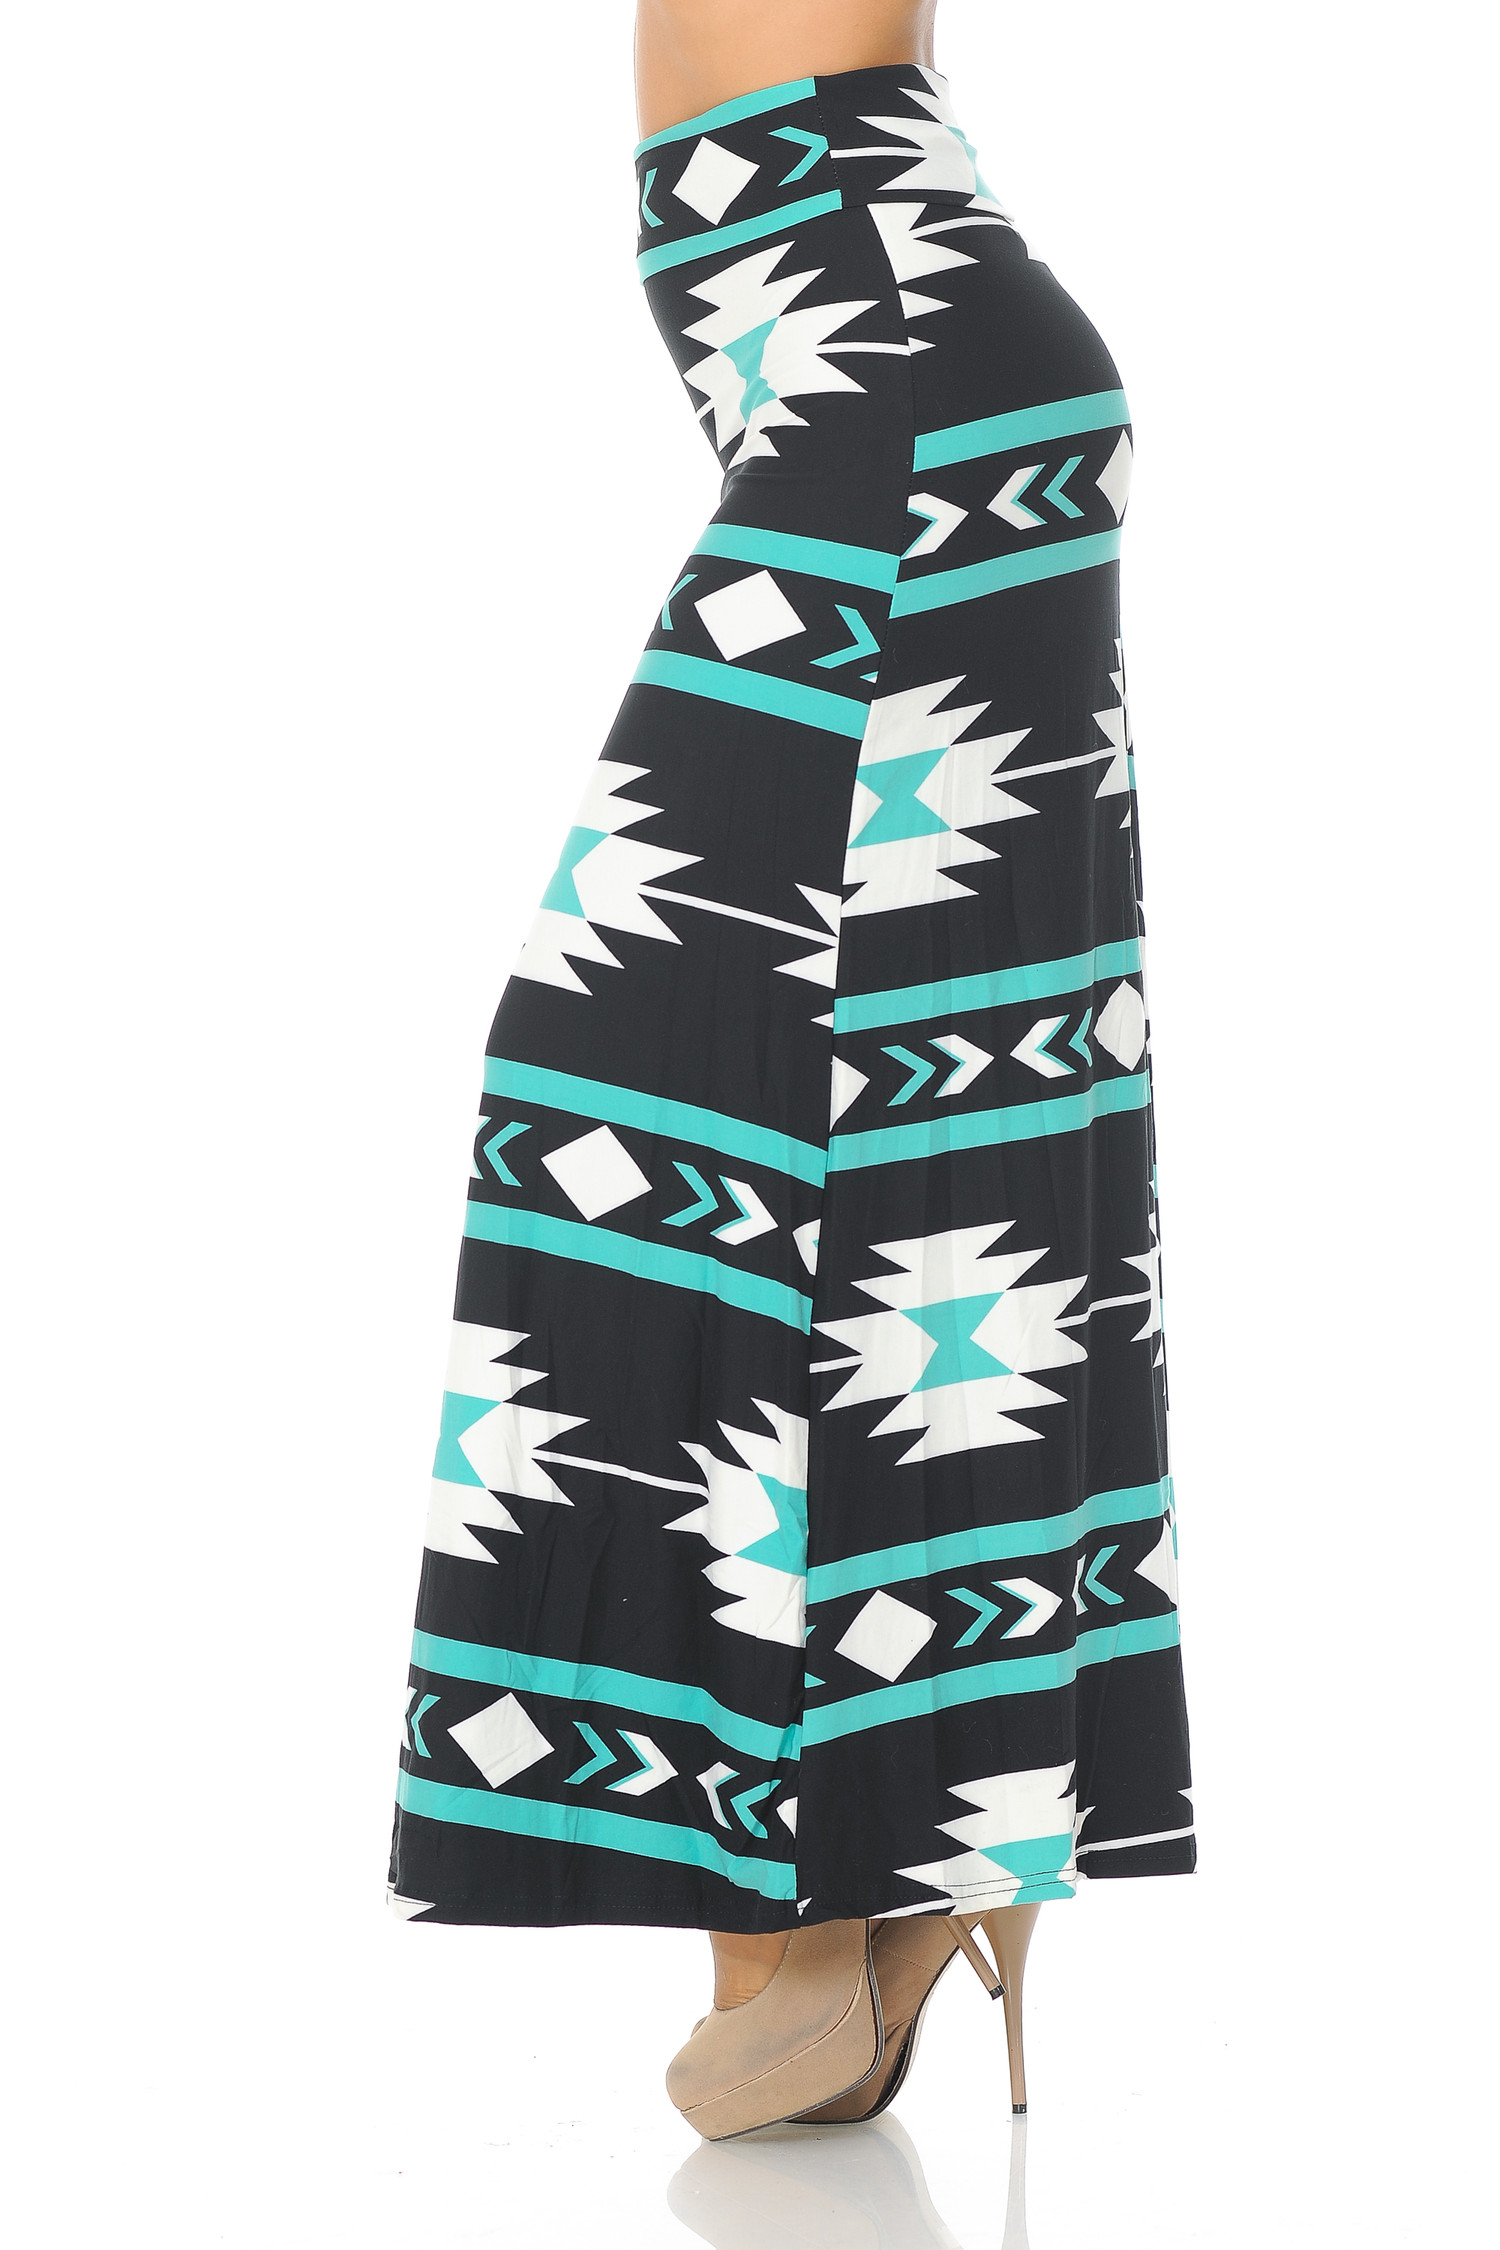 Brushed Mint on Black Aztec Tribal Maxi Skirt